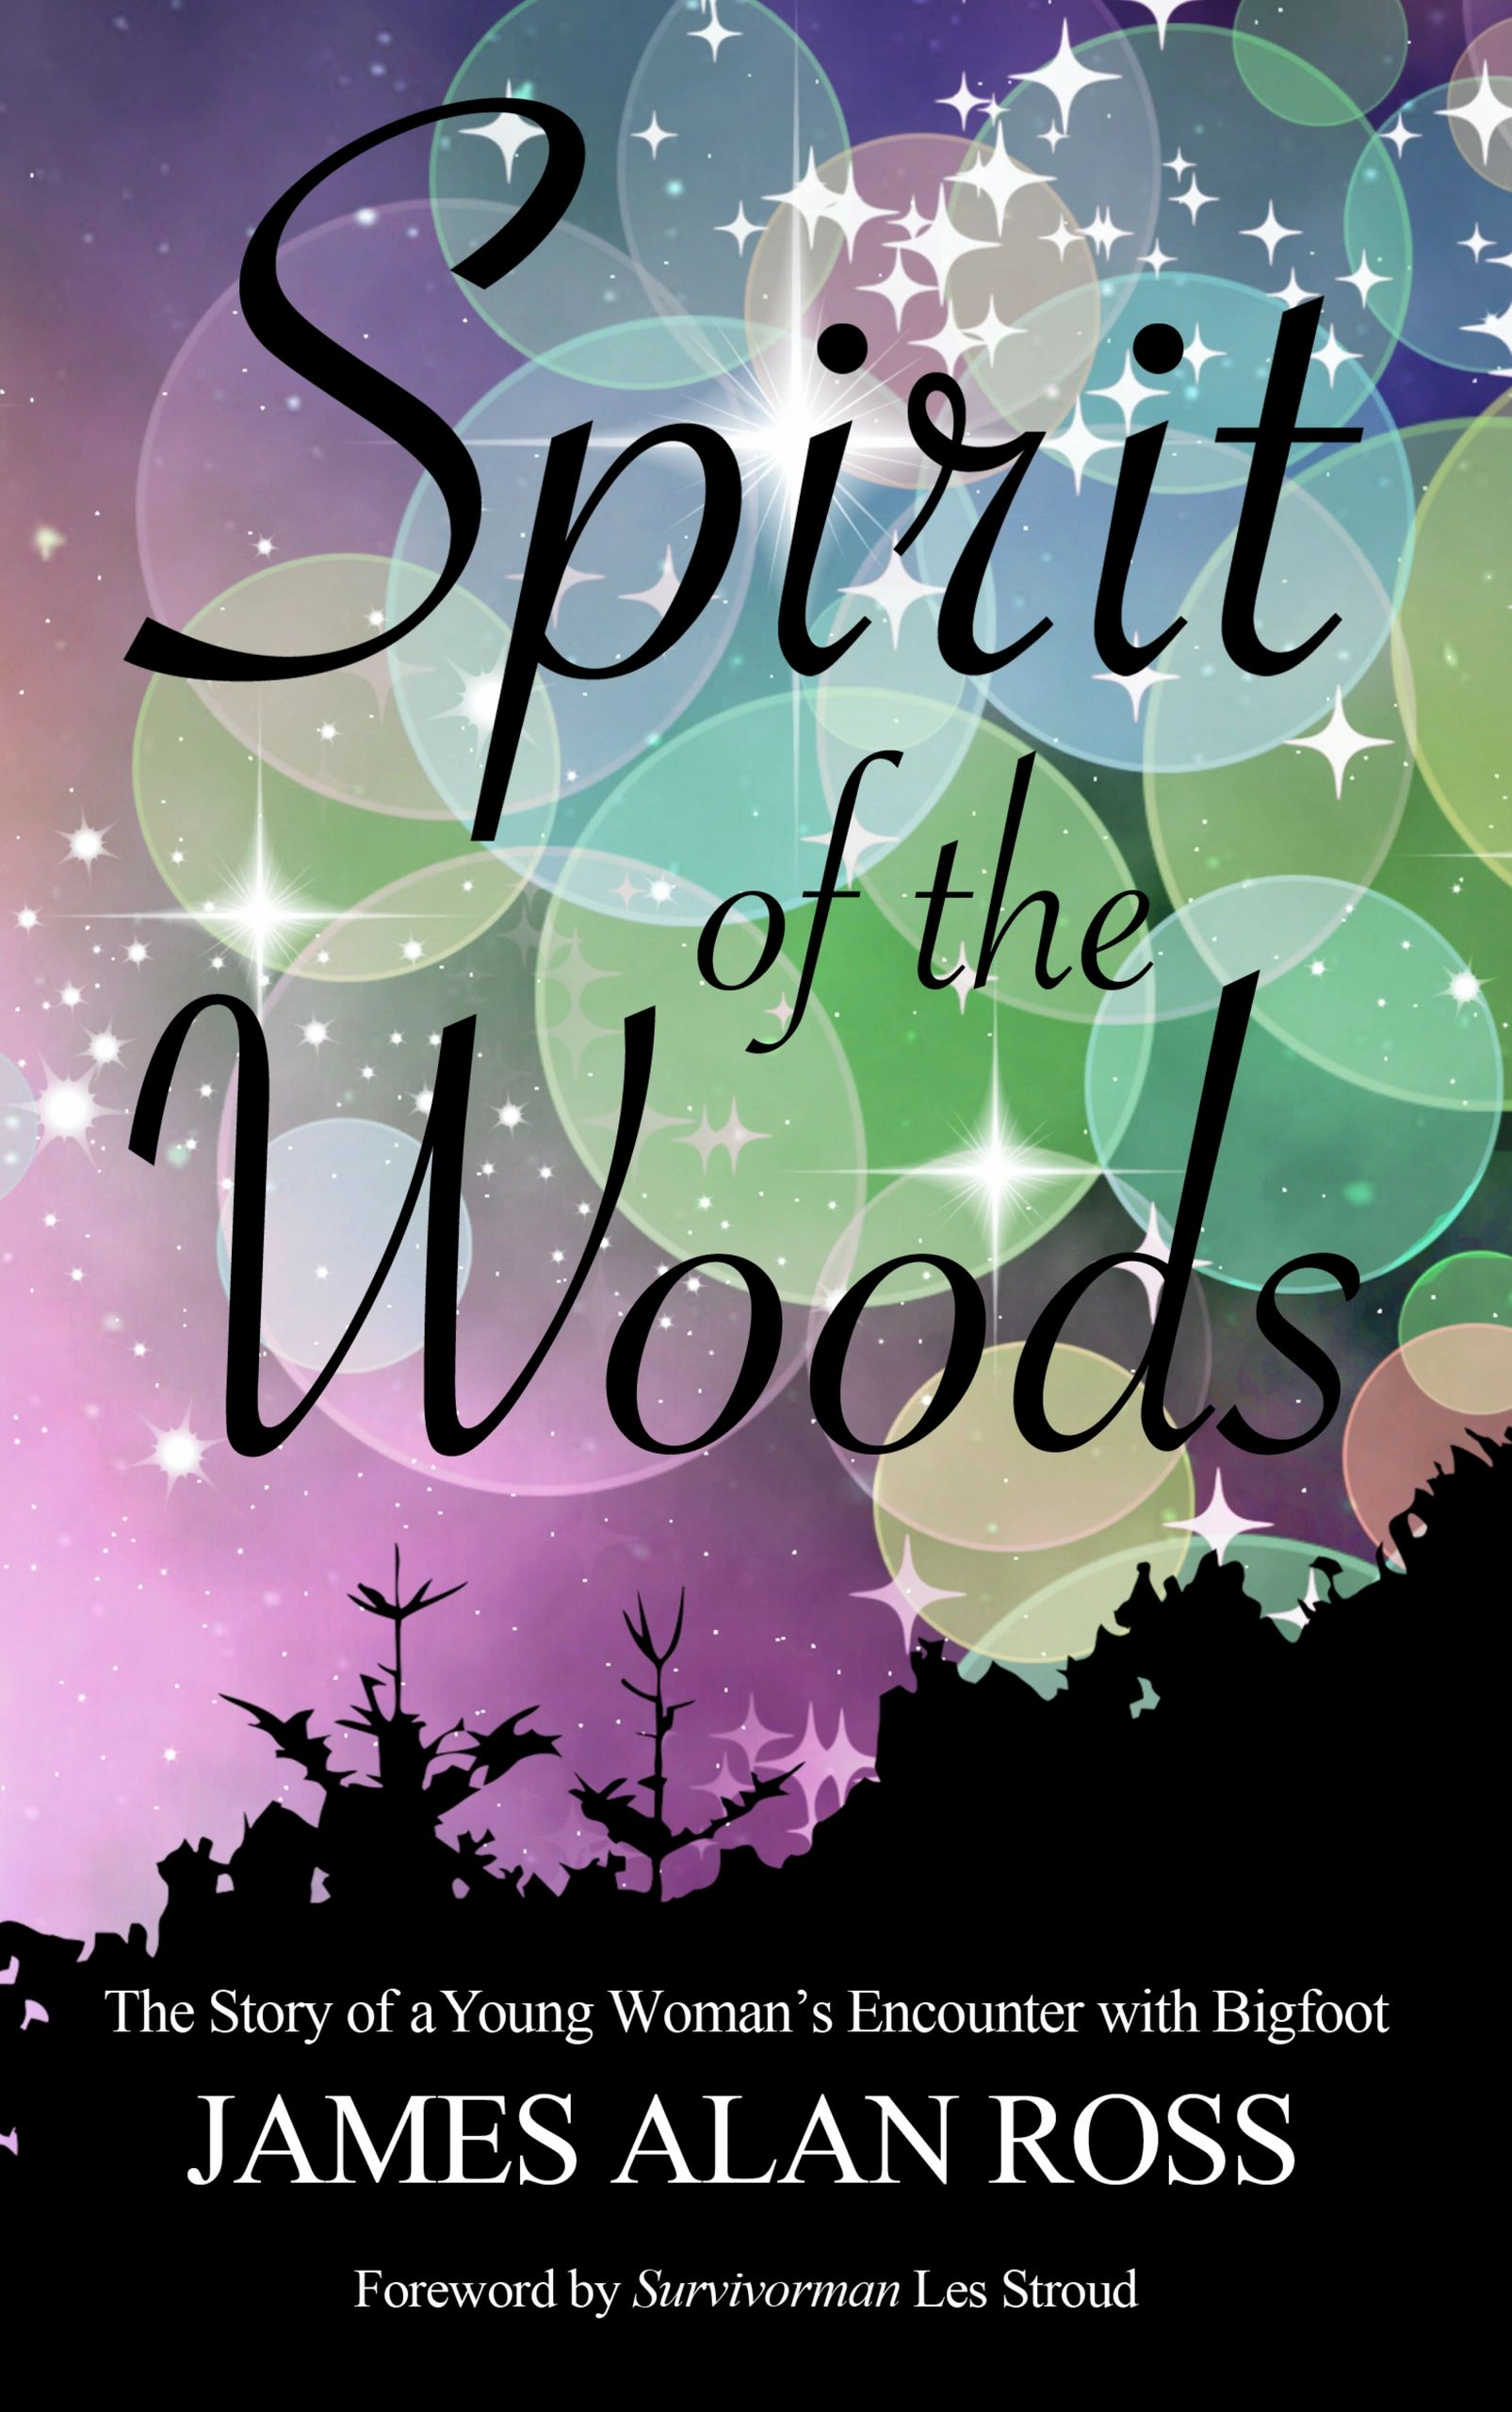 """Spirit of the Woods"" by James Alan Ross, foreword by Survivorman Les Stroud"